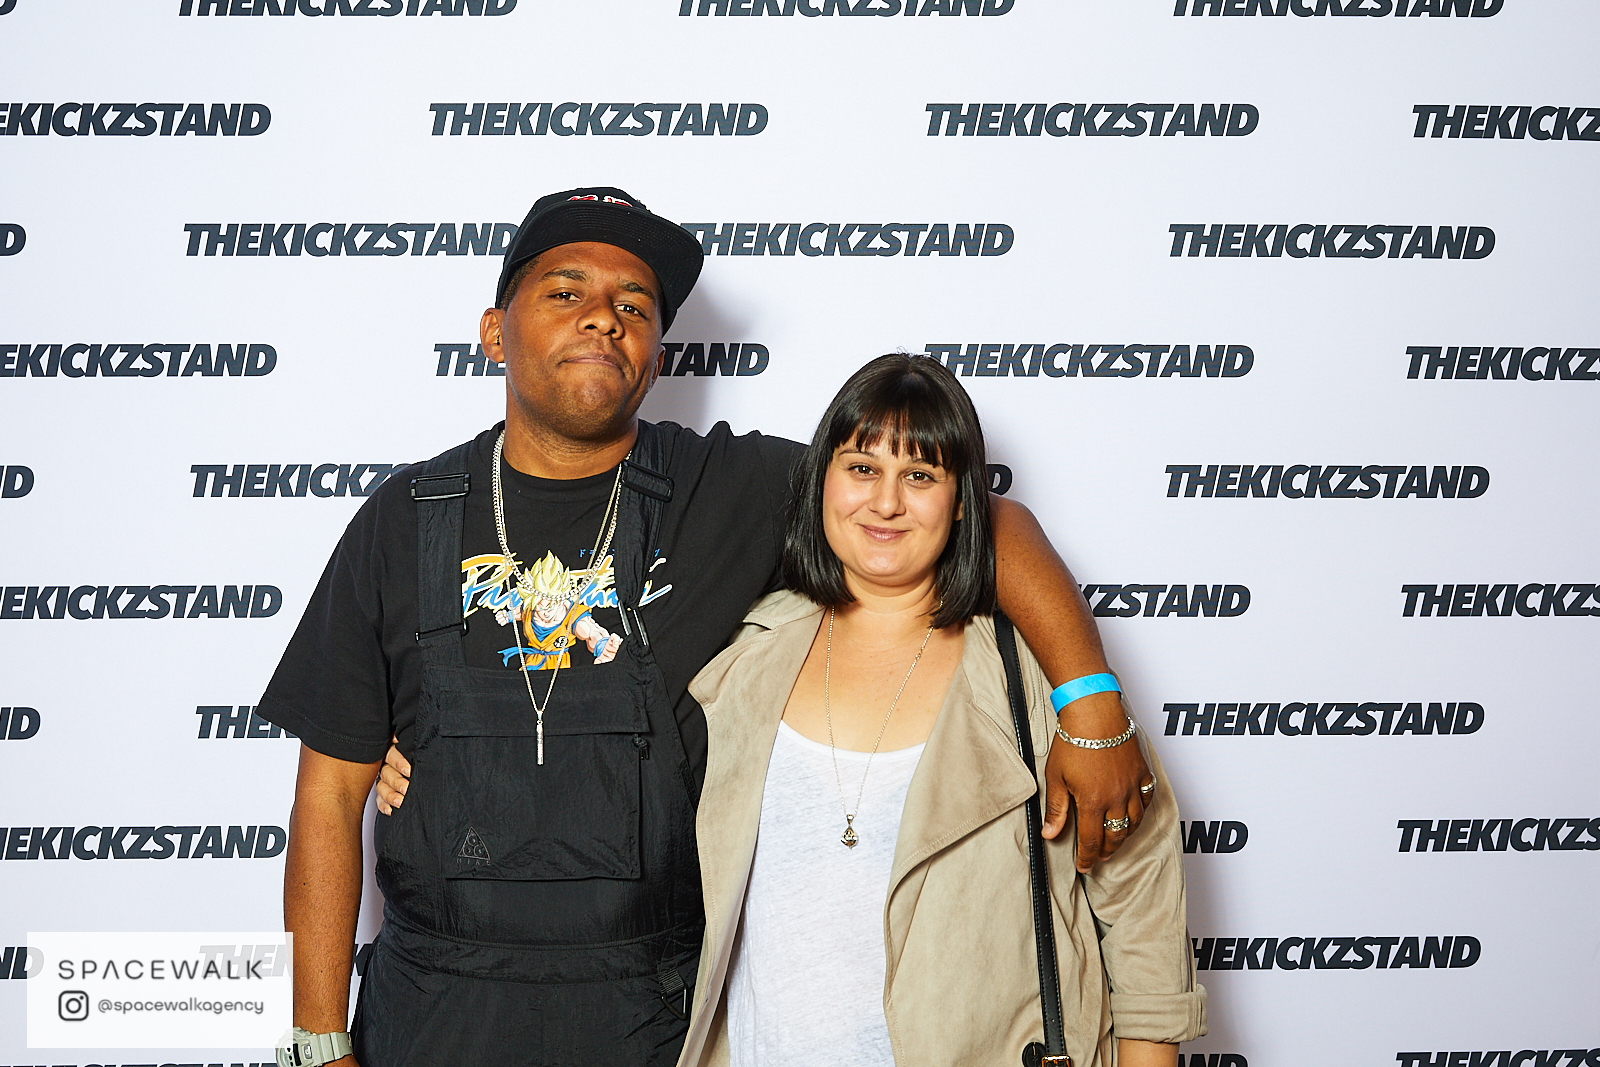 KICKZSTAND_BOOTH_073